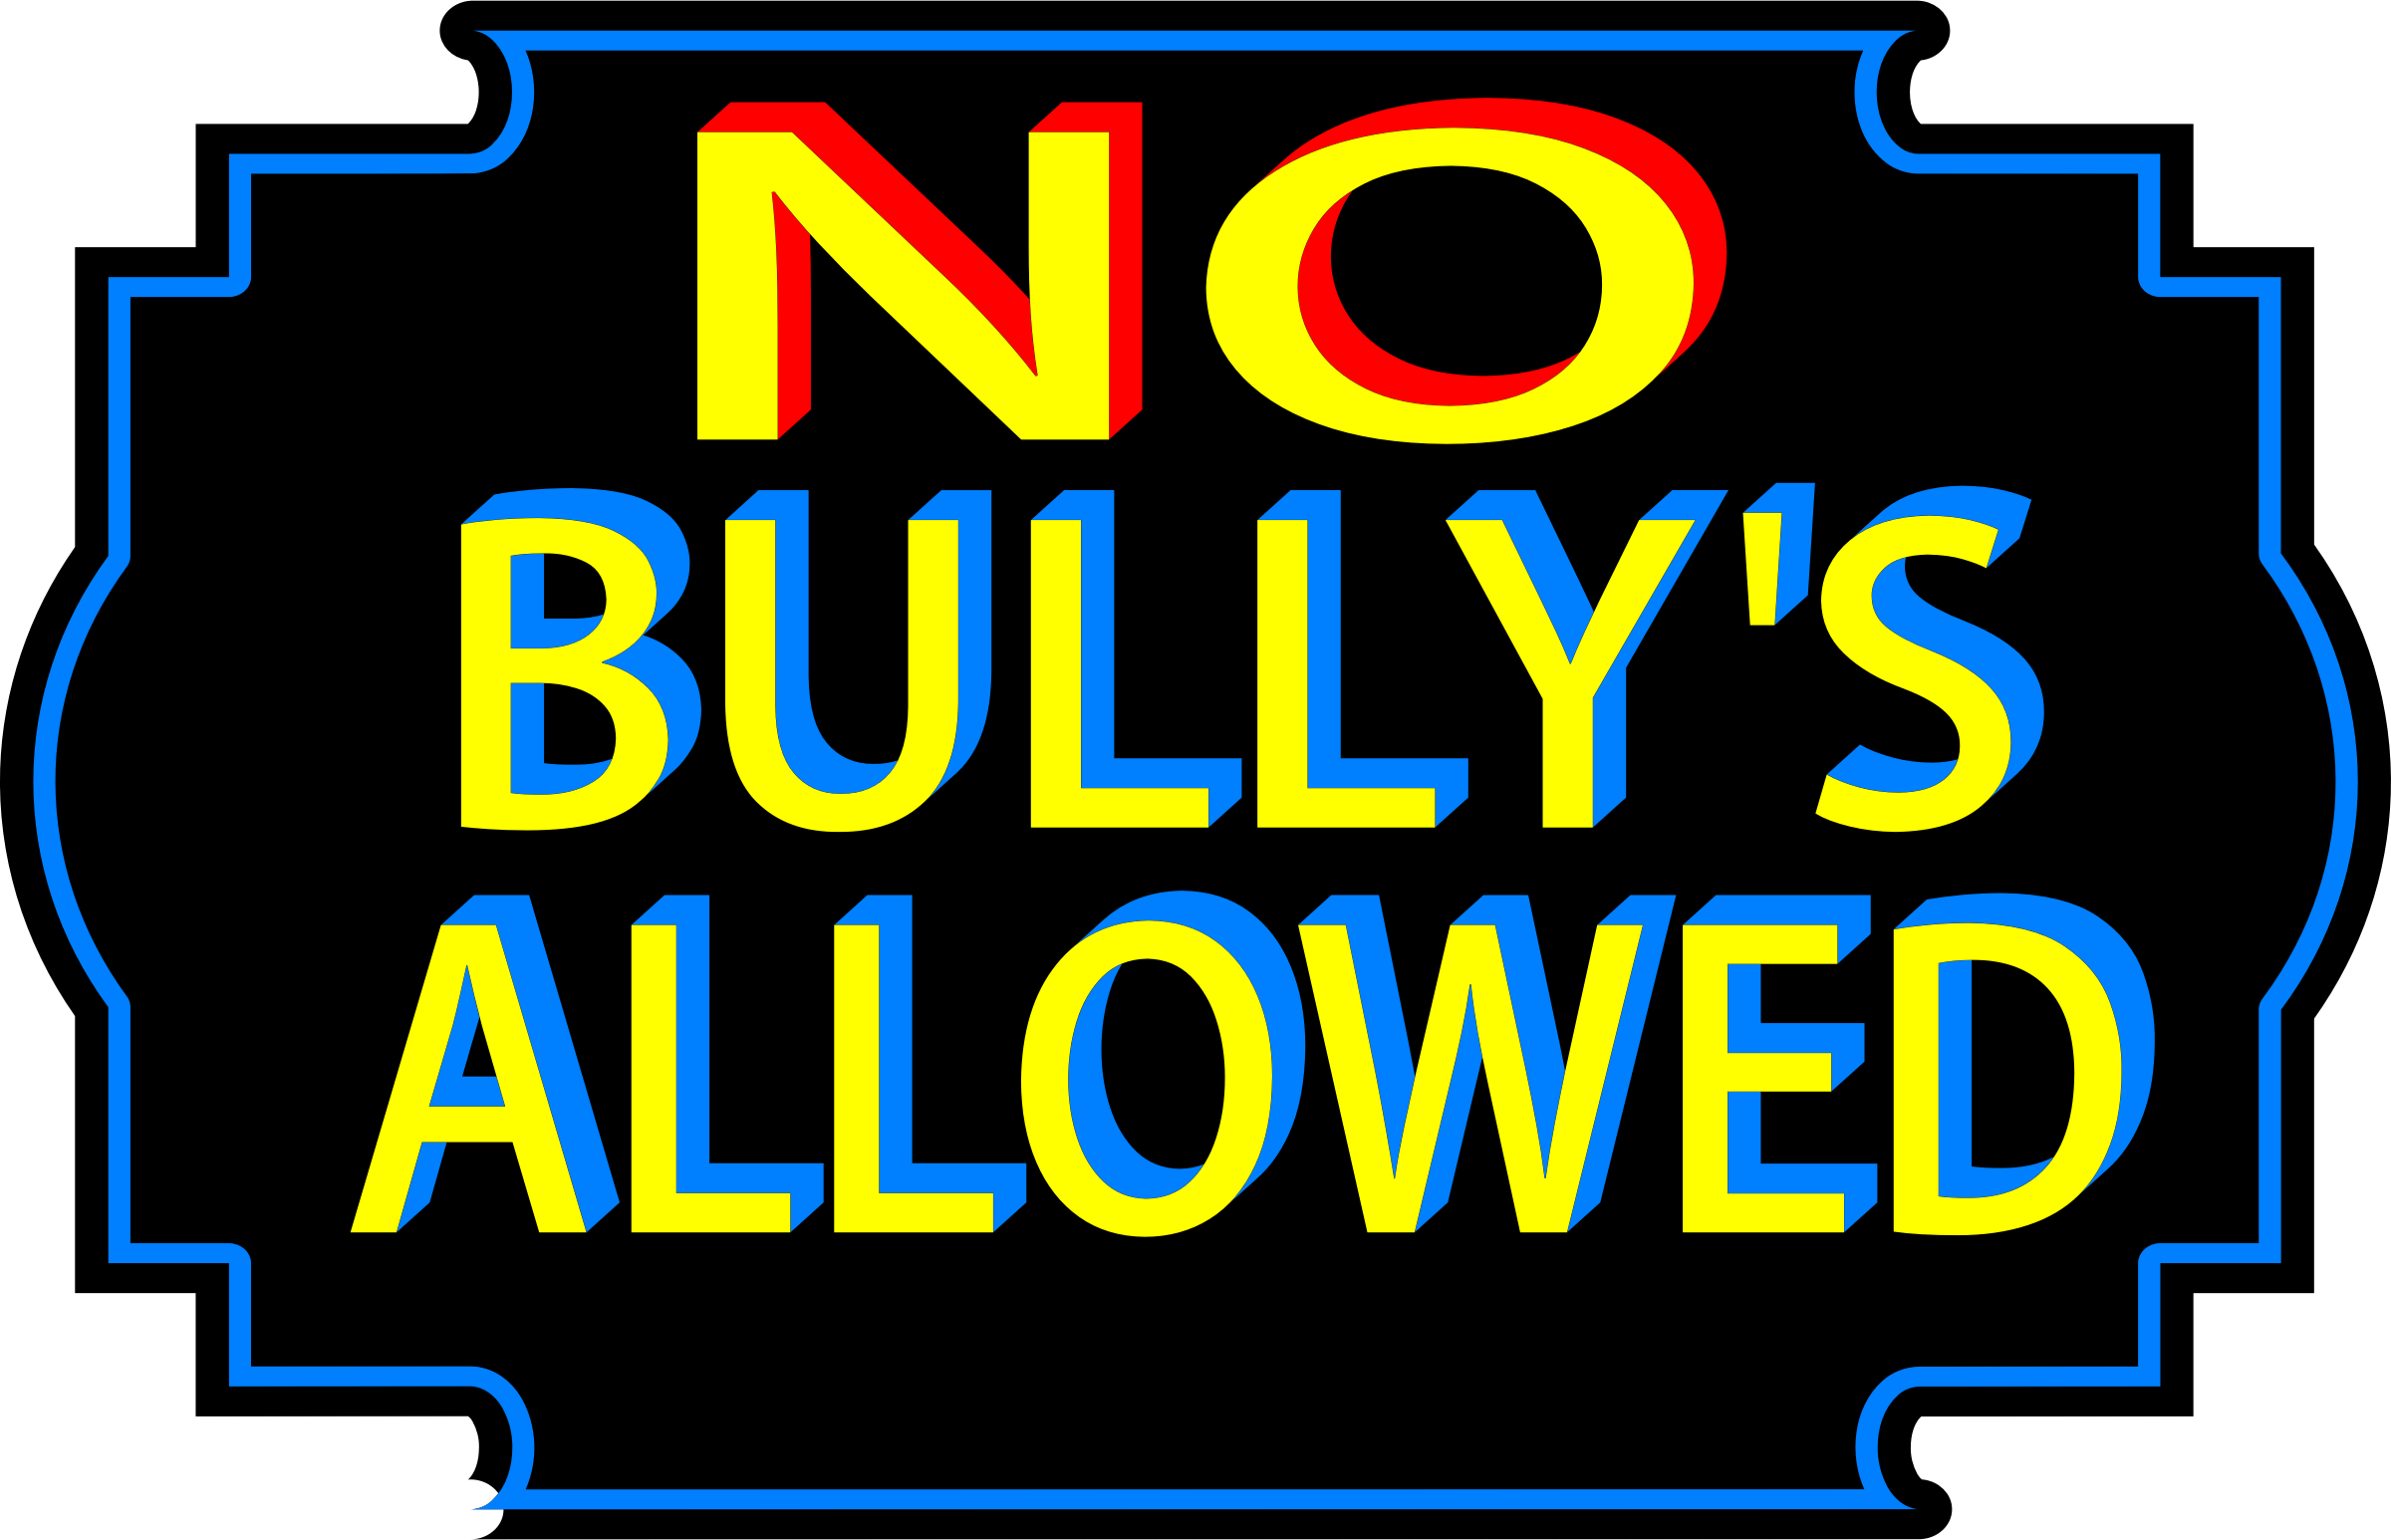 Bullying clipart icon. No bullies allowed icons